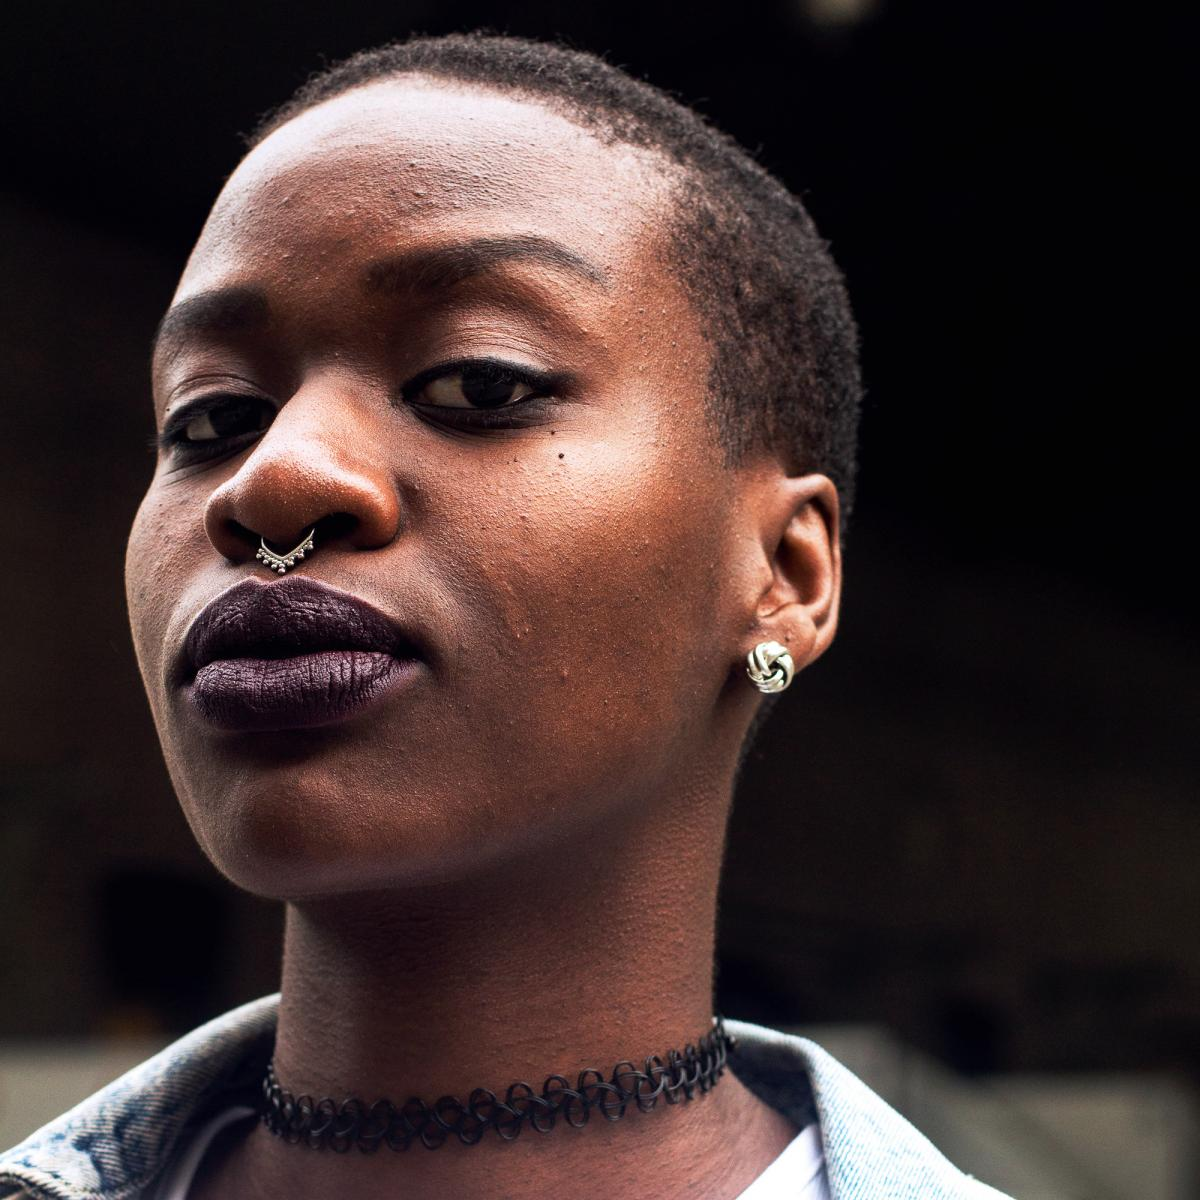 Juliet is Ugandan from the Acholi ethnic group. She grew up in Sweden and identifies as queer. She says she struggled to feel seen by the white LGBTQ community in Sweden, so she formed an organization called Black Queers Sweden. Her family accepts her sex